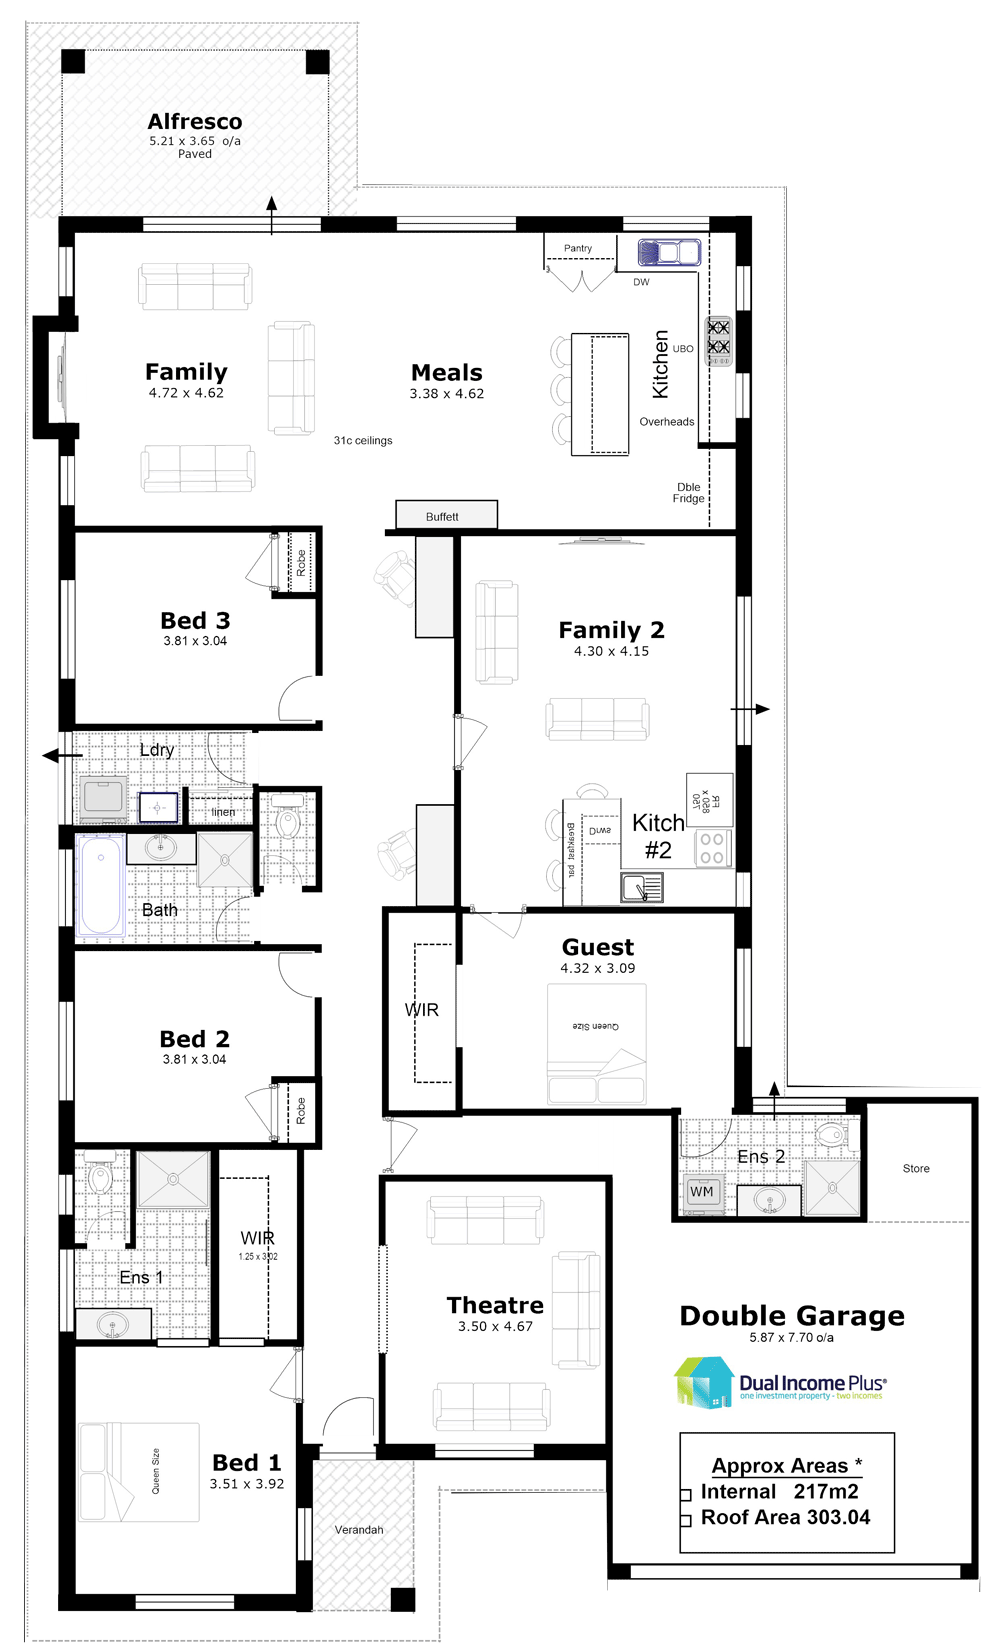 Designs for Multi generational home designs